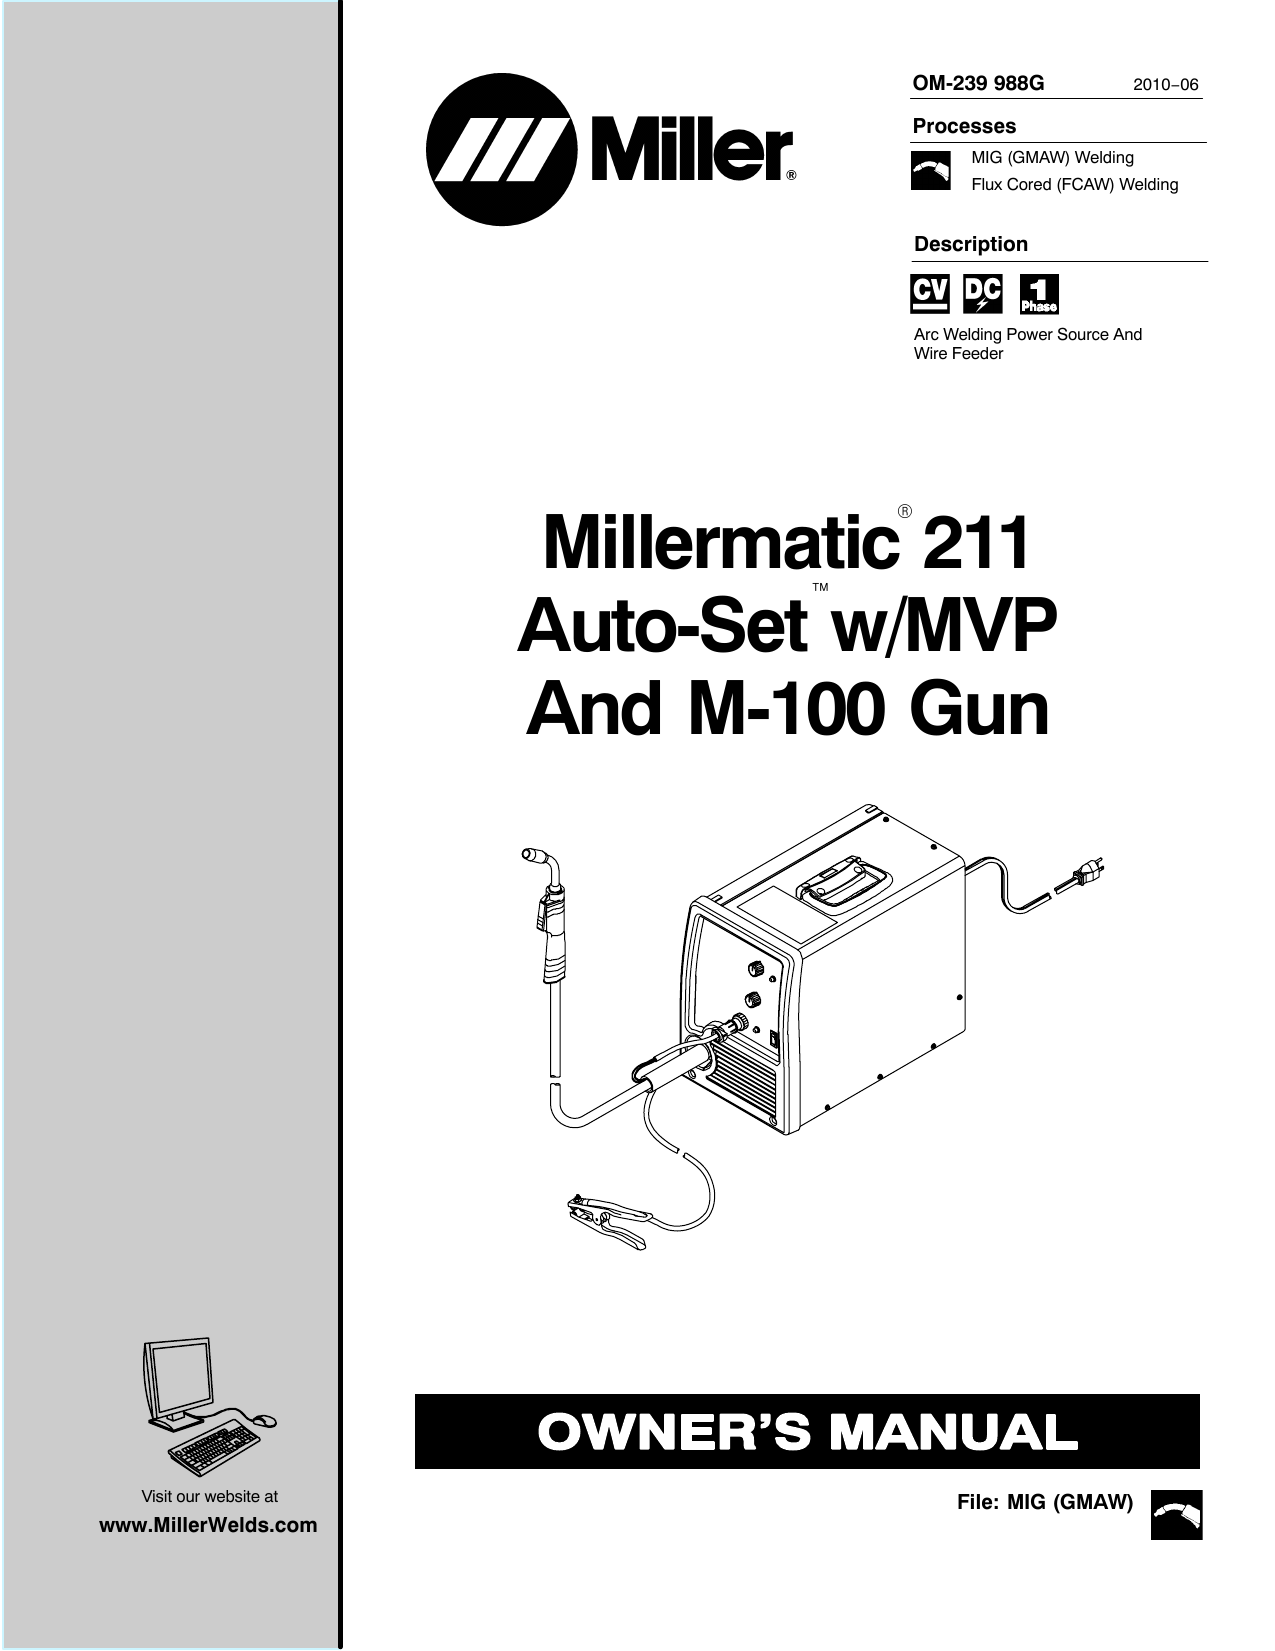 Miller M-100, Millermatic 211 Auto-Set Owner's Manual